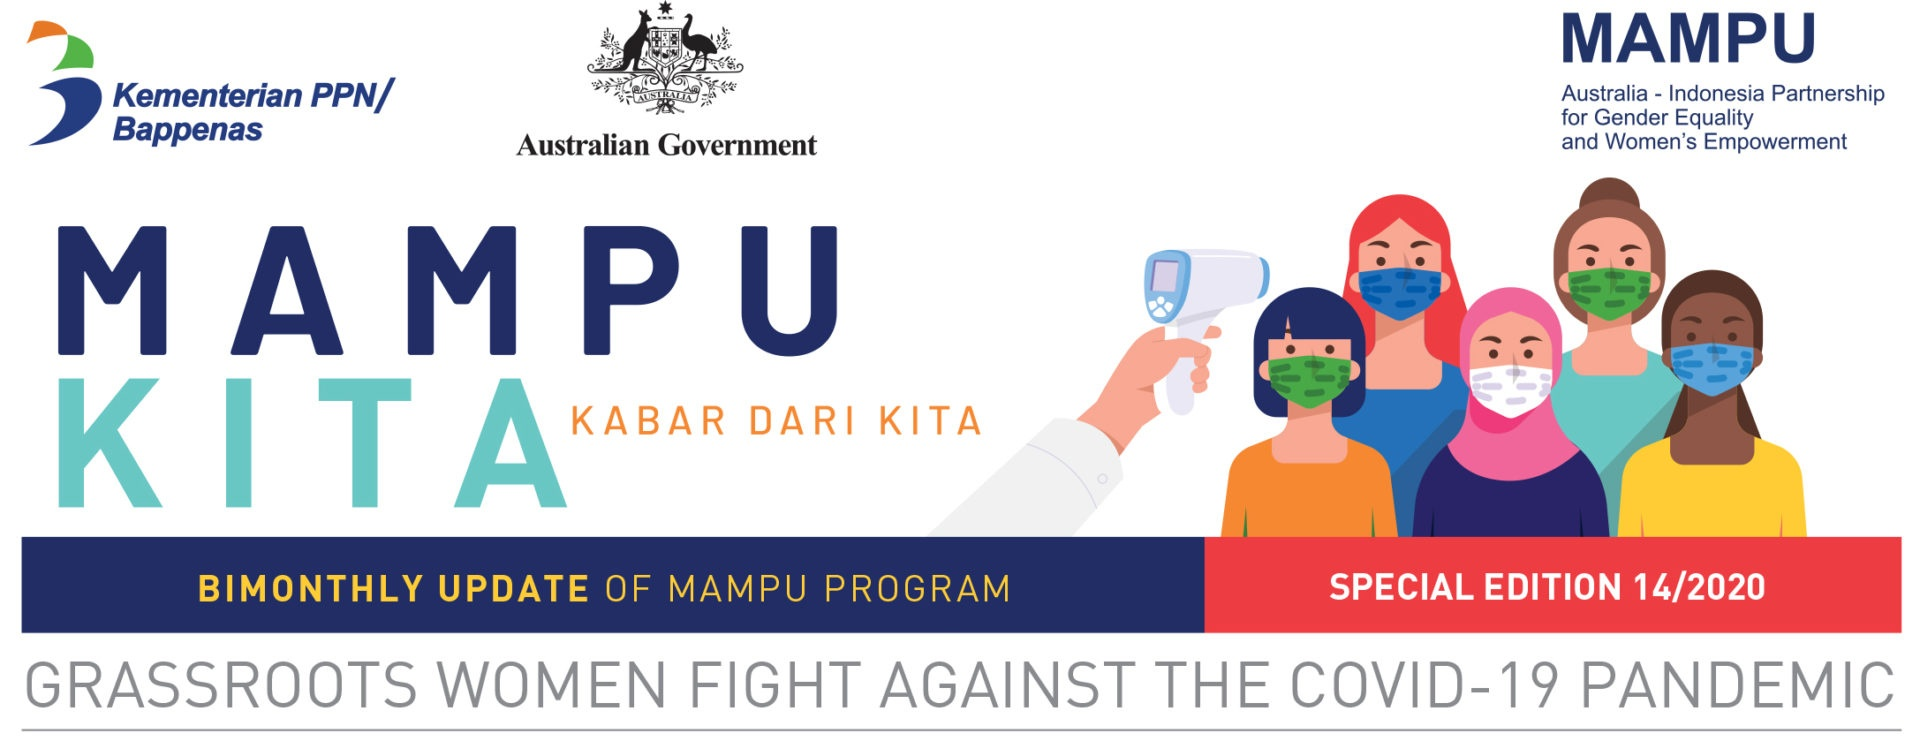 Projects in Action – Bimonthly Newsletter: Australia-Indonesia Partnership for Gender Equality and Women's Empowerment (MAMPU)